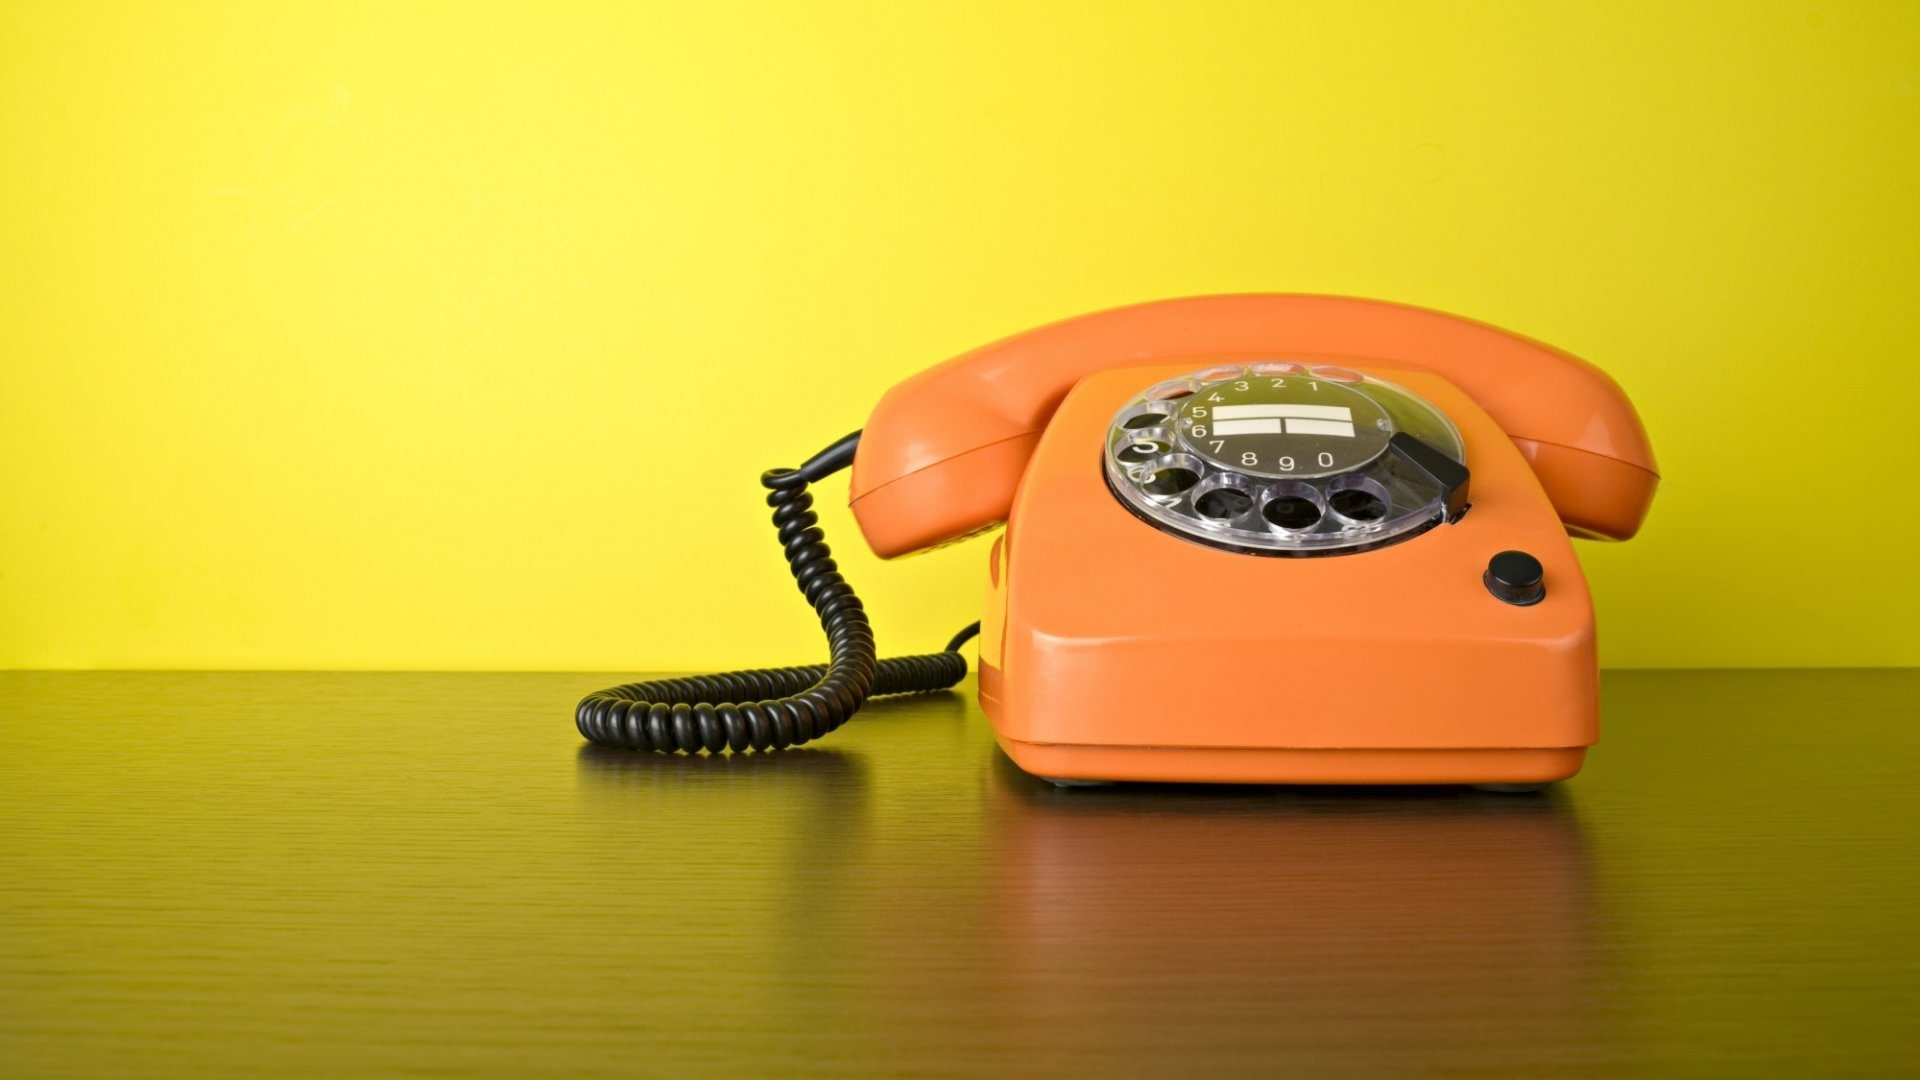 Those Annoying Debt Collection and Sales Calls Could Be Worth $1,500 Each. Here's How